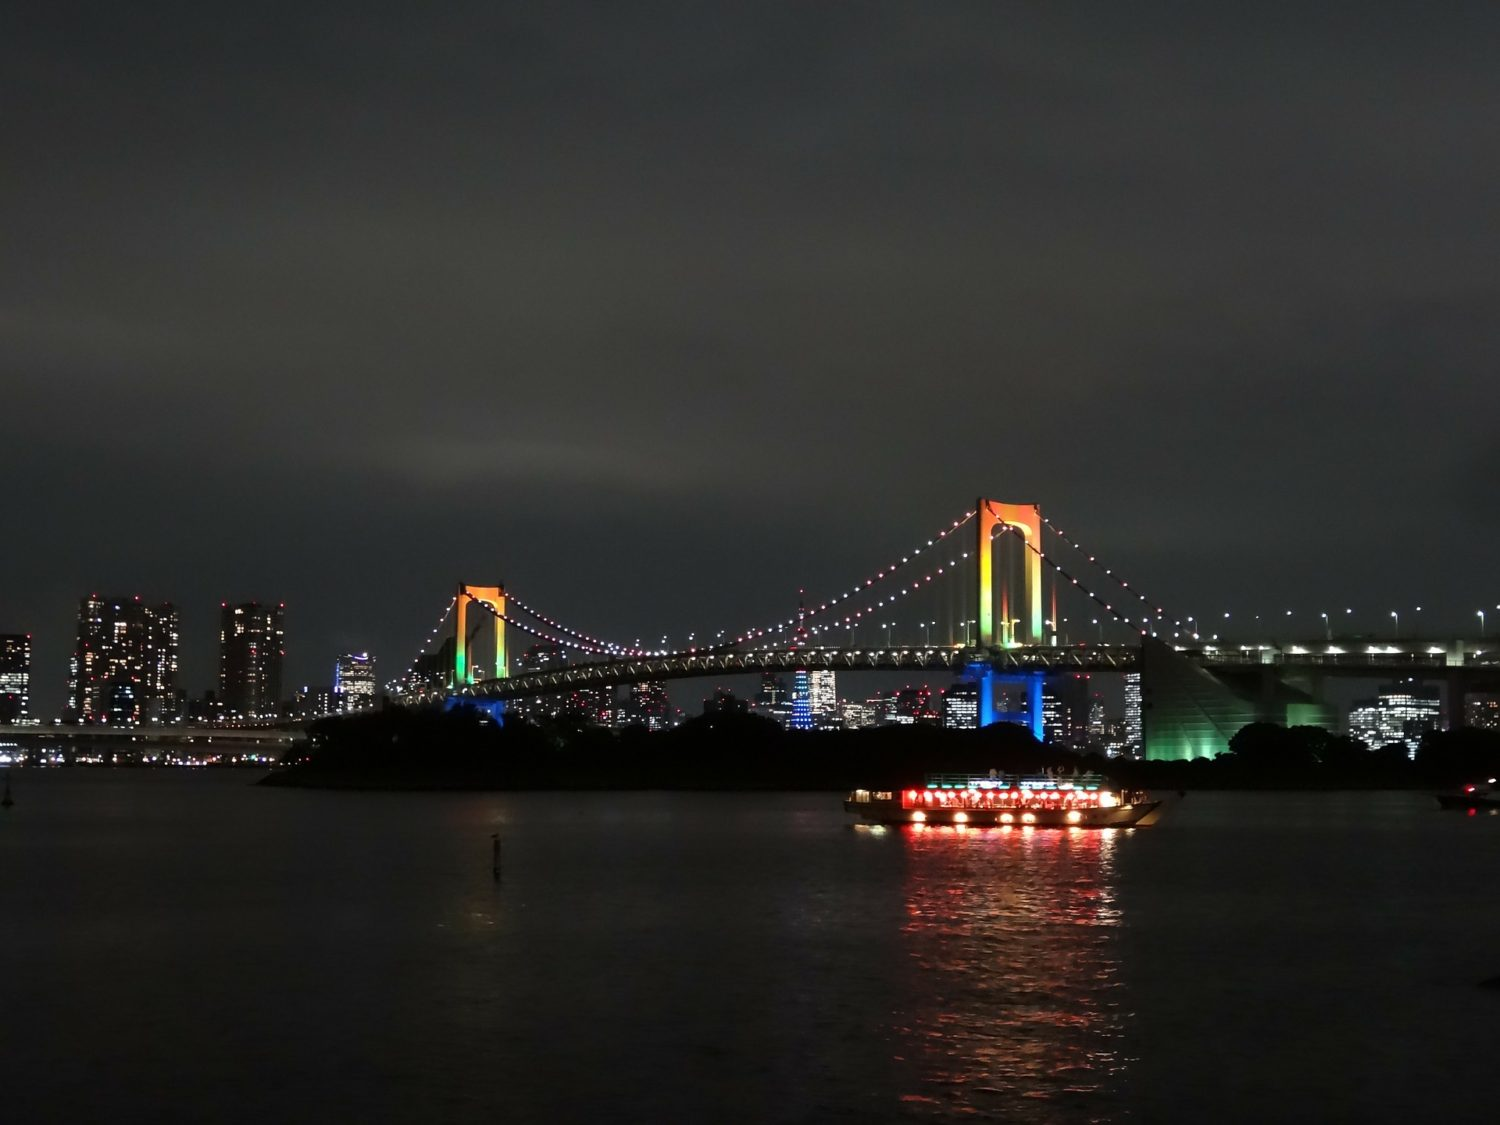 Rainbow Bridge, Tokyo, Japan at night